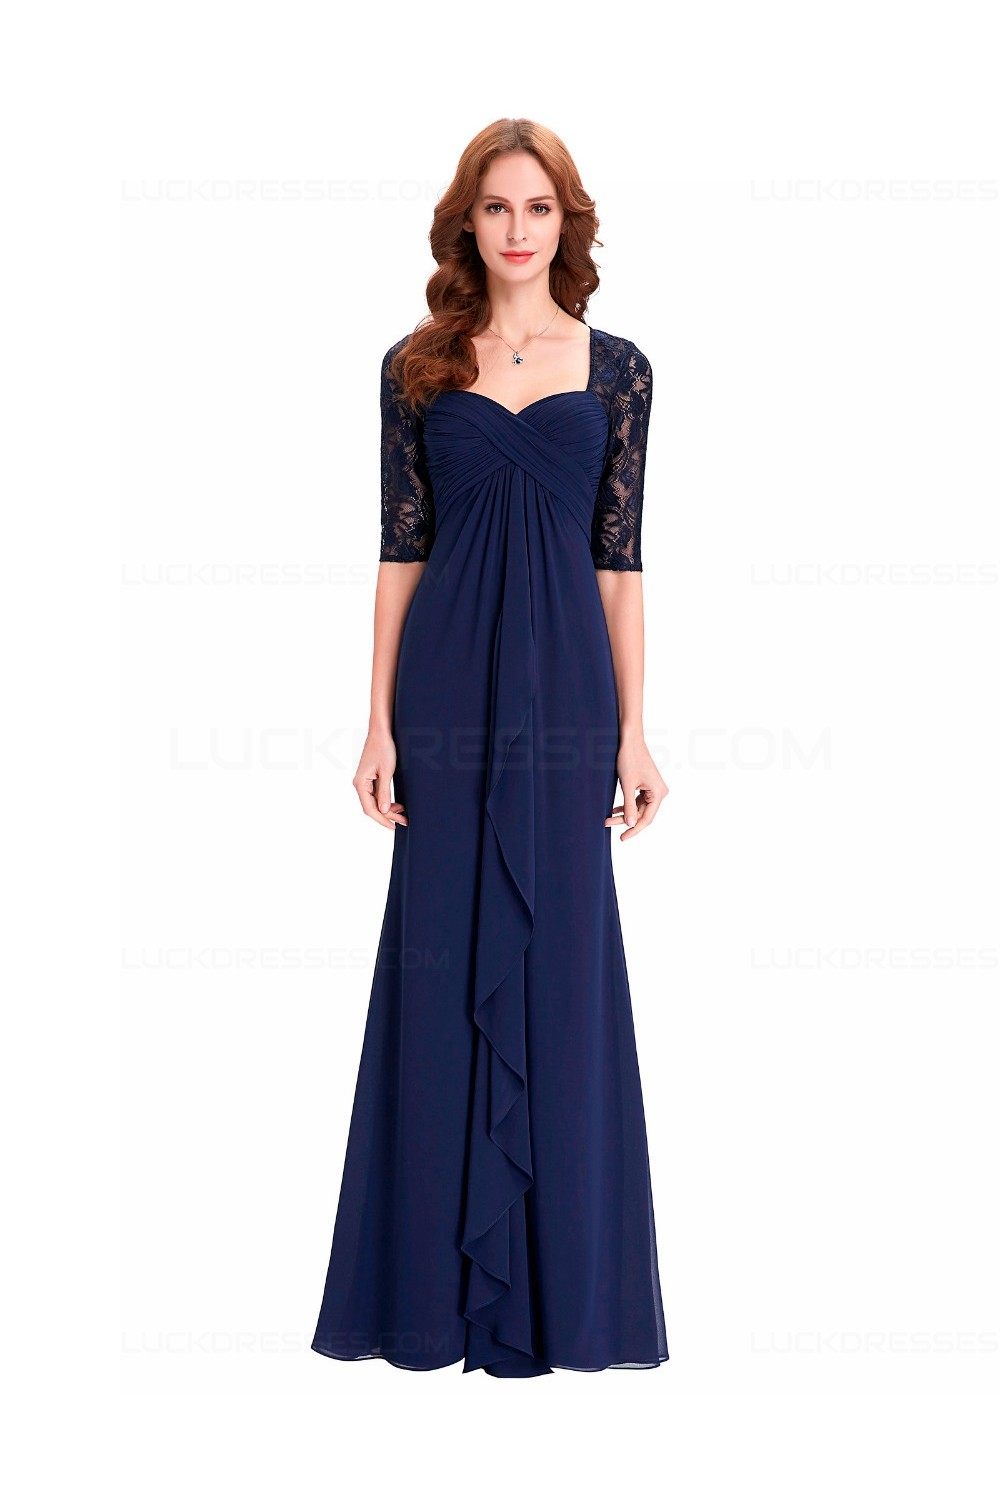 Long Navy Blue Half Sleeves Lace Chiffon Mother Of The